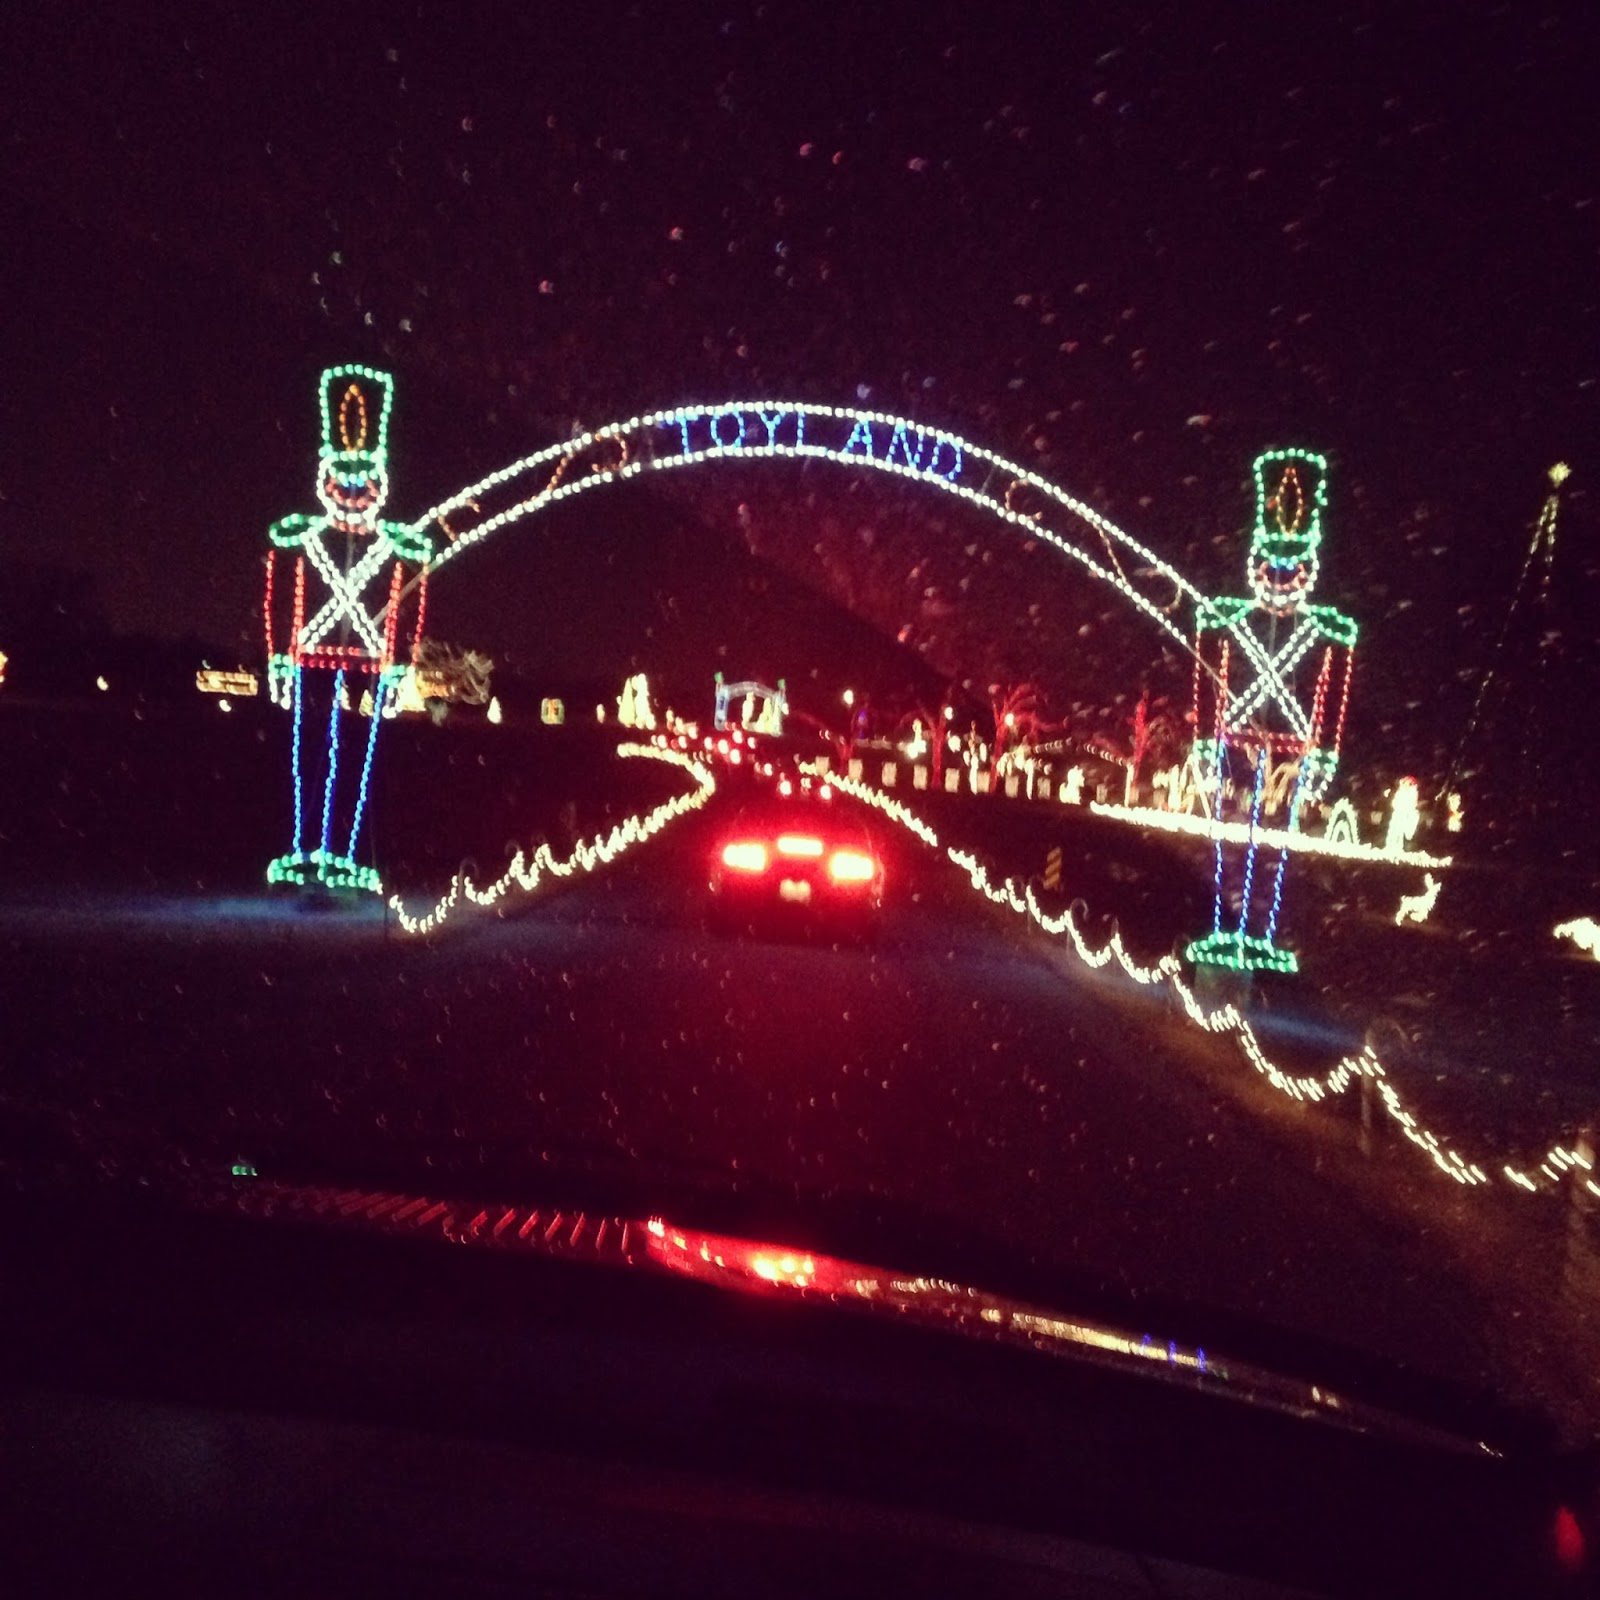 Why do we decorate with christmas lights - Go To The Drive Through Christmas Lights We Have One Nearby That S Free It S Not Huge But We Still Have A Fun Time